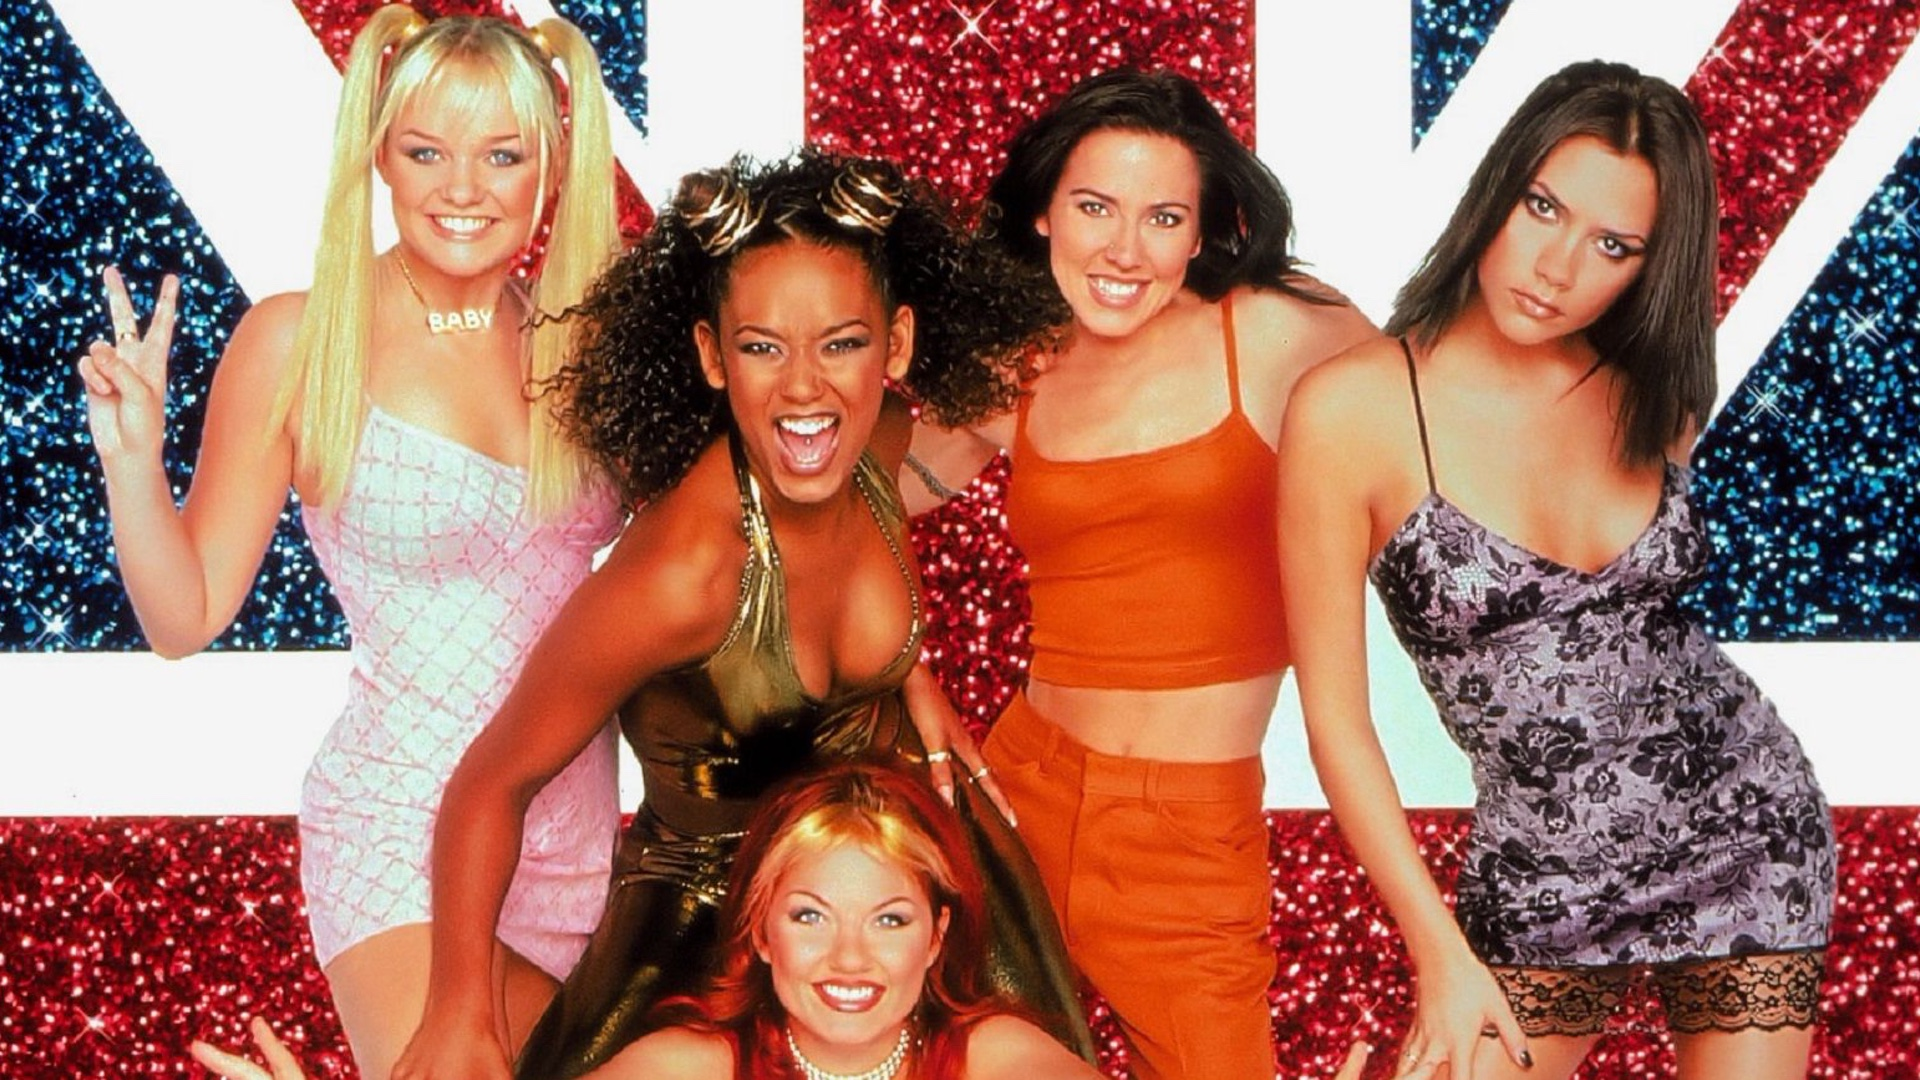 a-spice-girls-animated-movie-is-in-the-works-at-paramount-pictures-social.jpg